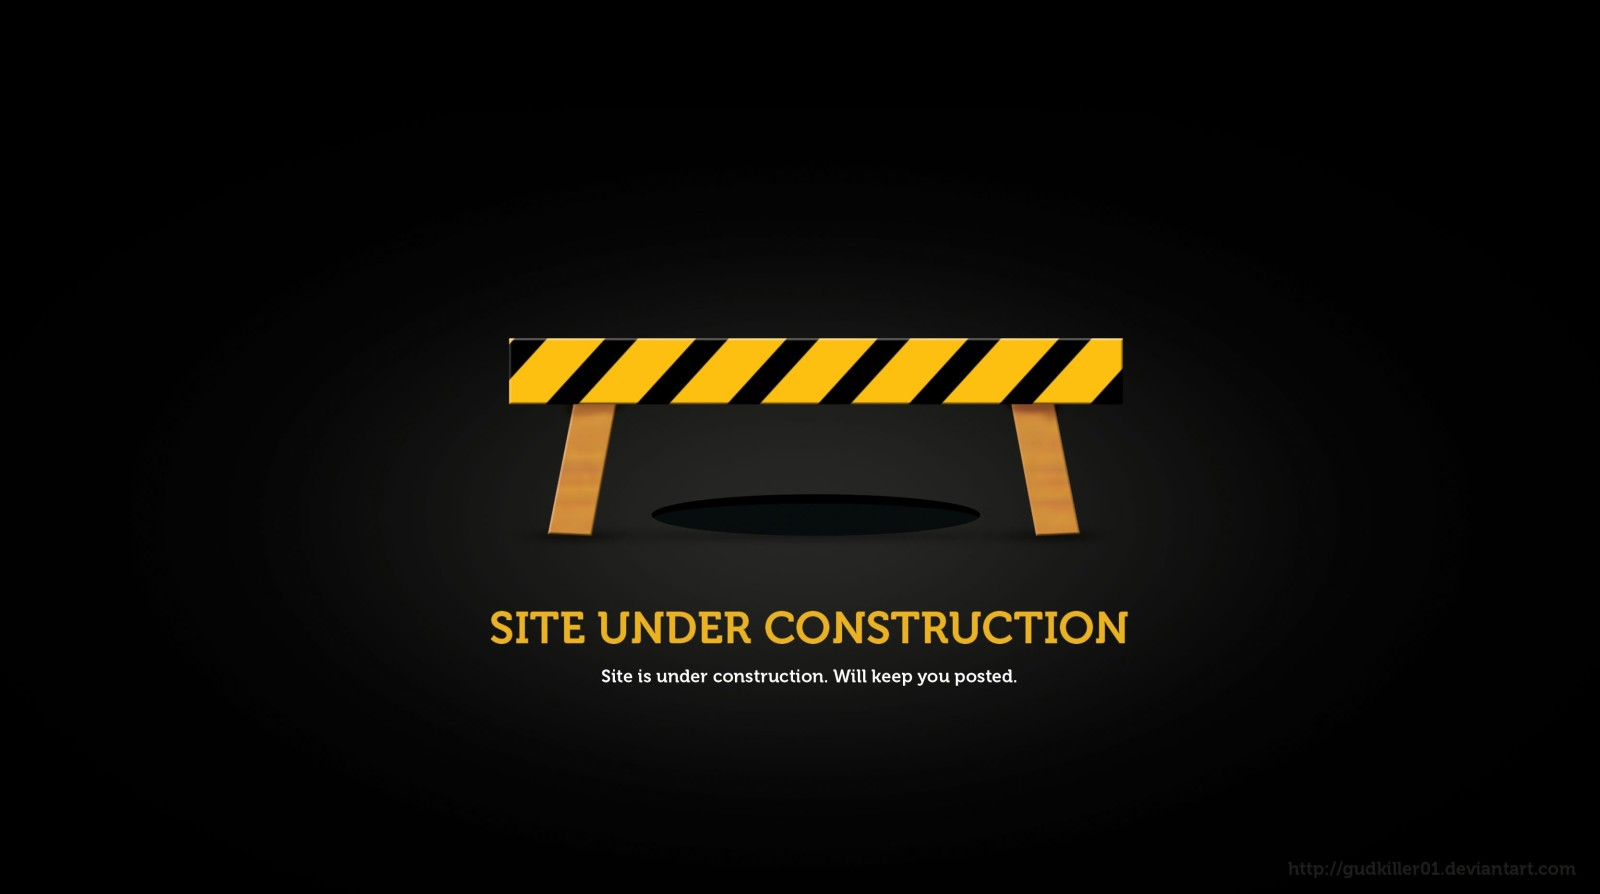 under_construction_sign_work_computer_humor_funny_text_maintenance_wallpaper_website_web_3333x1863